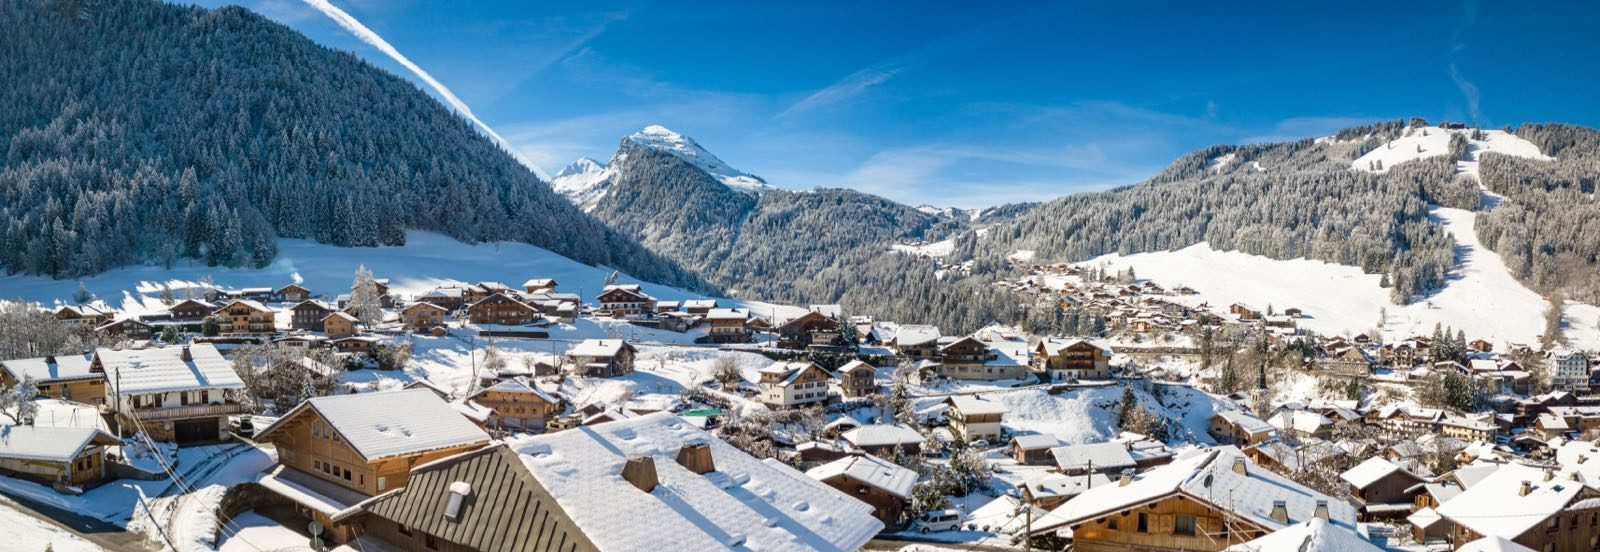 Chalet-Ibex-Morzine-Resort-View